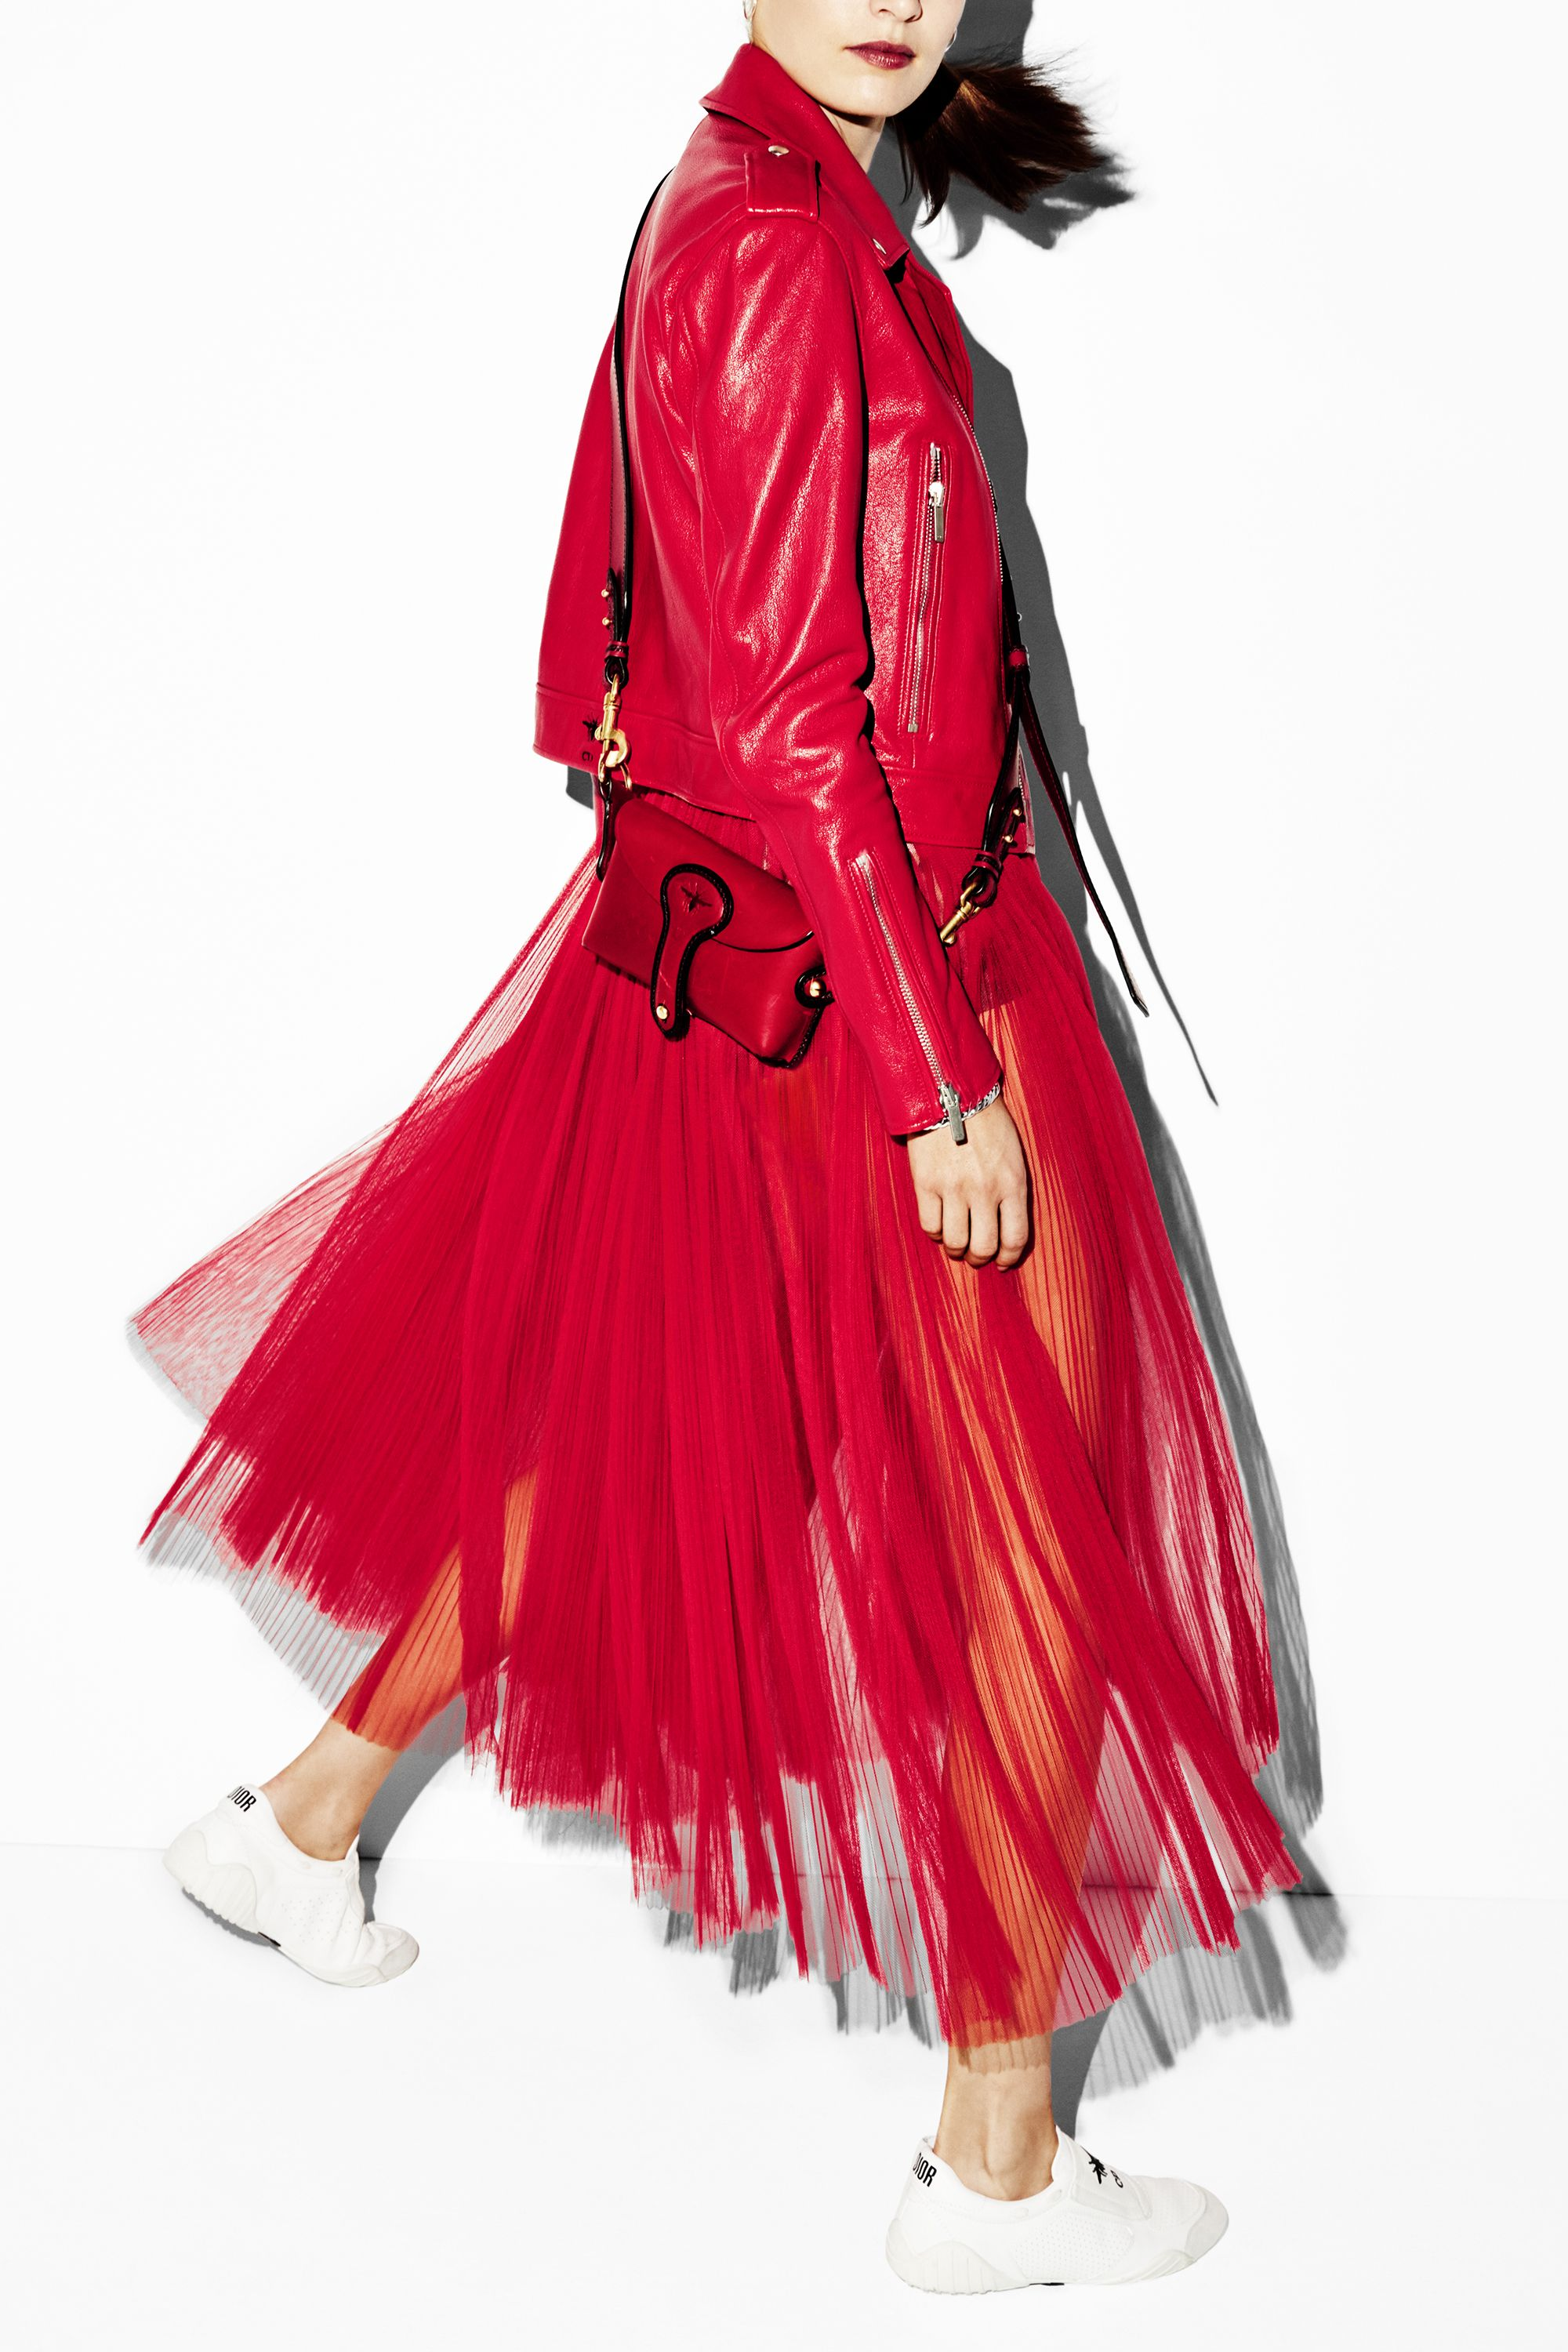 "<p><span>The versatile style transitions </span><span>easily from day to night.</span></p><p><span></span><em data-redactor-tag=""em"" data-verified=""redactor""><span>Dior jacket, $4,400, skirt, $3,600, bag, $2,100, and sneakers, $920, </span><span>800-929-DIOR; Pandora earrings, $40, <a href=""http://www.pandora.net/en-us"" target=""_blank"" data-tracking-id=""recirc-text-link"">pandora.net</a>; Phillip Gavriel </span></em><span><em data-redactor-tag=""em"" data-verified=""redactor"">Fine Jewelry bangle, $245, <a href=""http://phillipgavriel.com/index2.php"" target=""_blank"" data-tracking-id=""recirc-text-link"">phillipgavriel.com</a>.</em></span></p>"